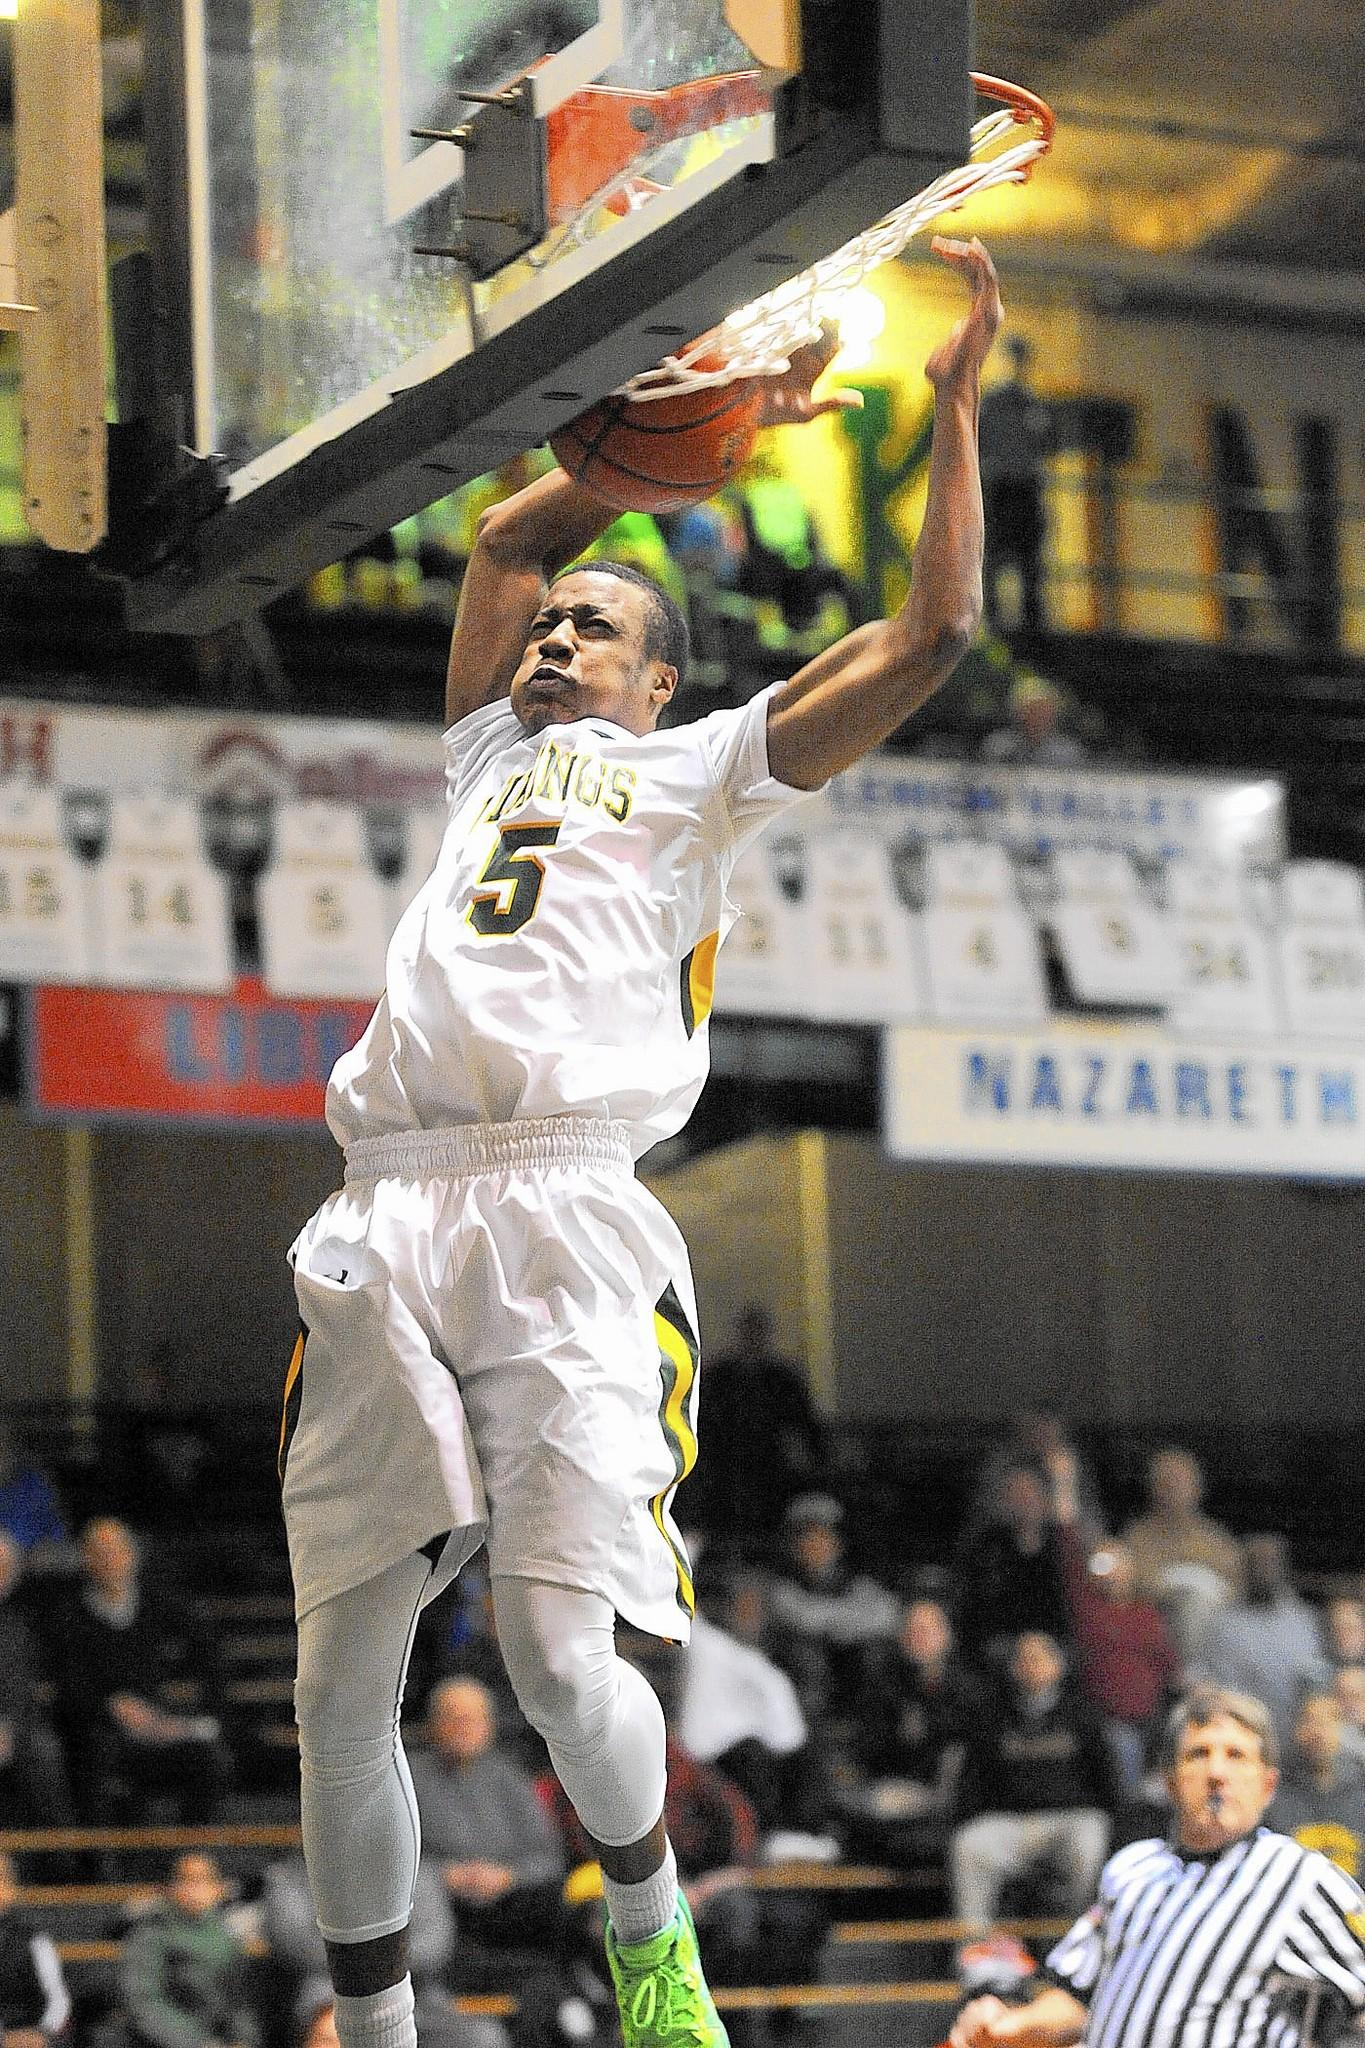 Central Catholic's Muhammad-Ali Abdur-Rahkman slams home a dunk earlier this year. The Vikings enter the District 11 tournament 24-0.